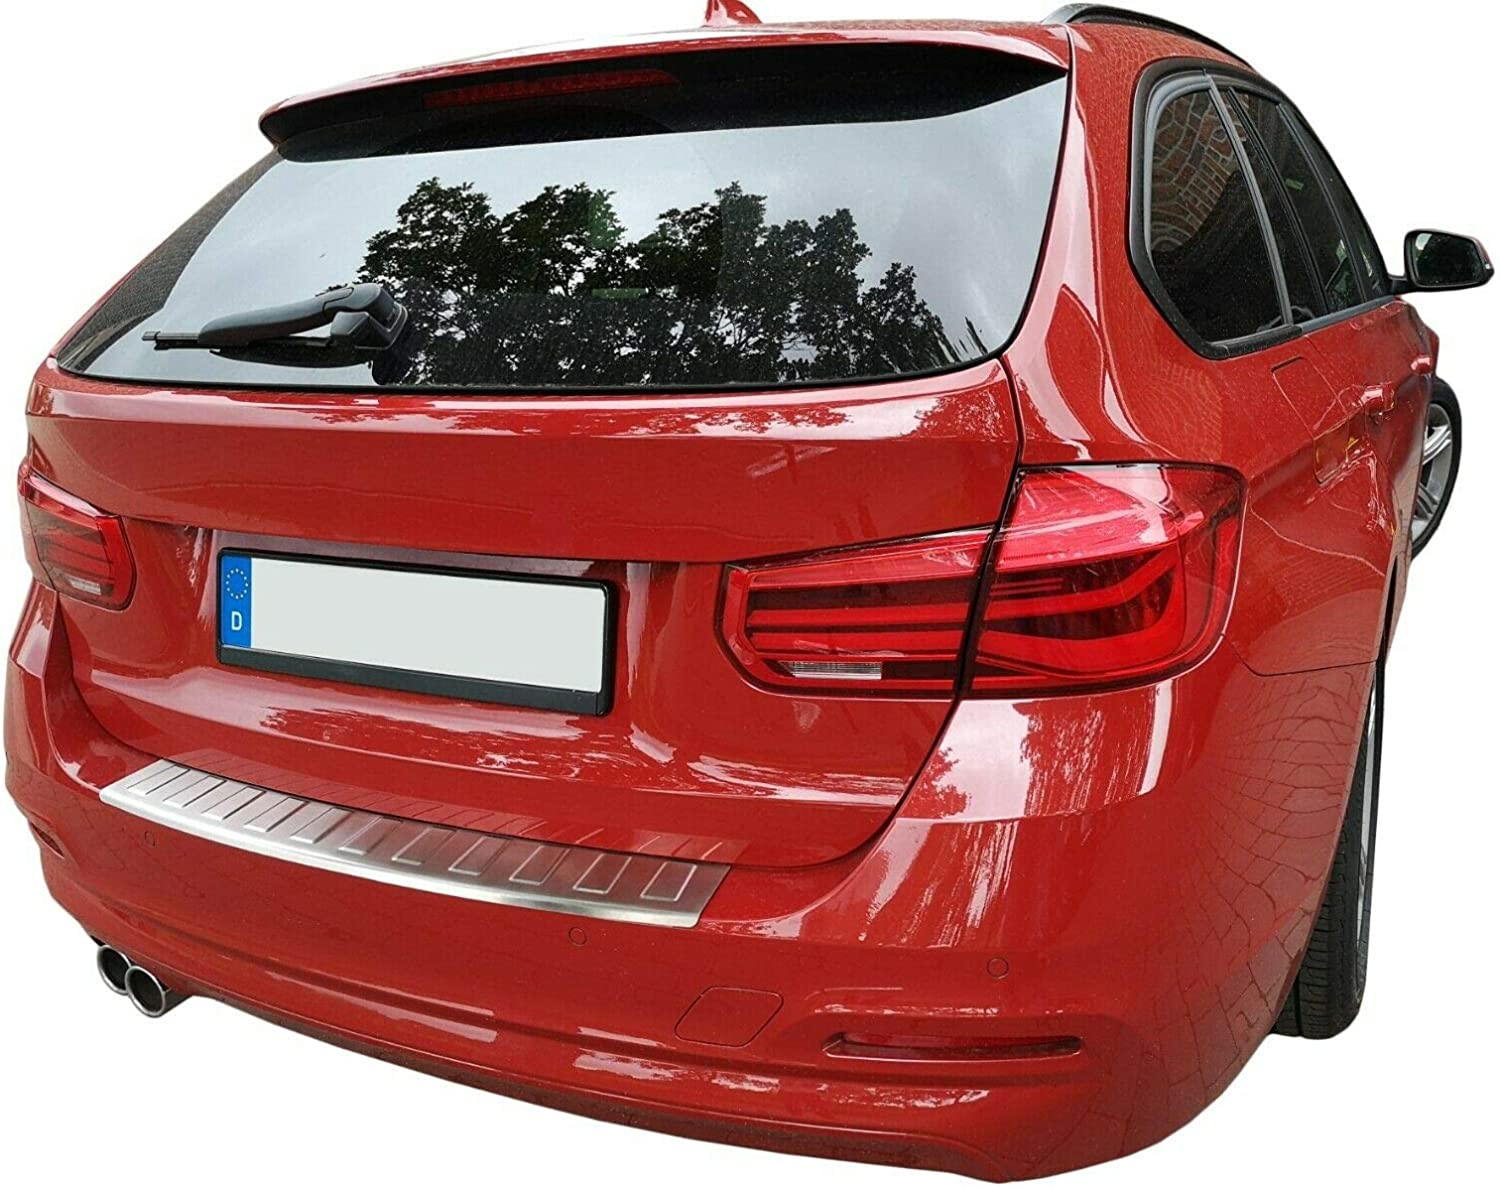 Rear Bumper Protector for SERIES 3 F31 TOURING 2012-2019 Matt Stainless Steel Protection for Cargo Boot Edge